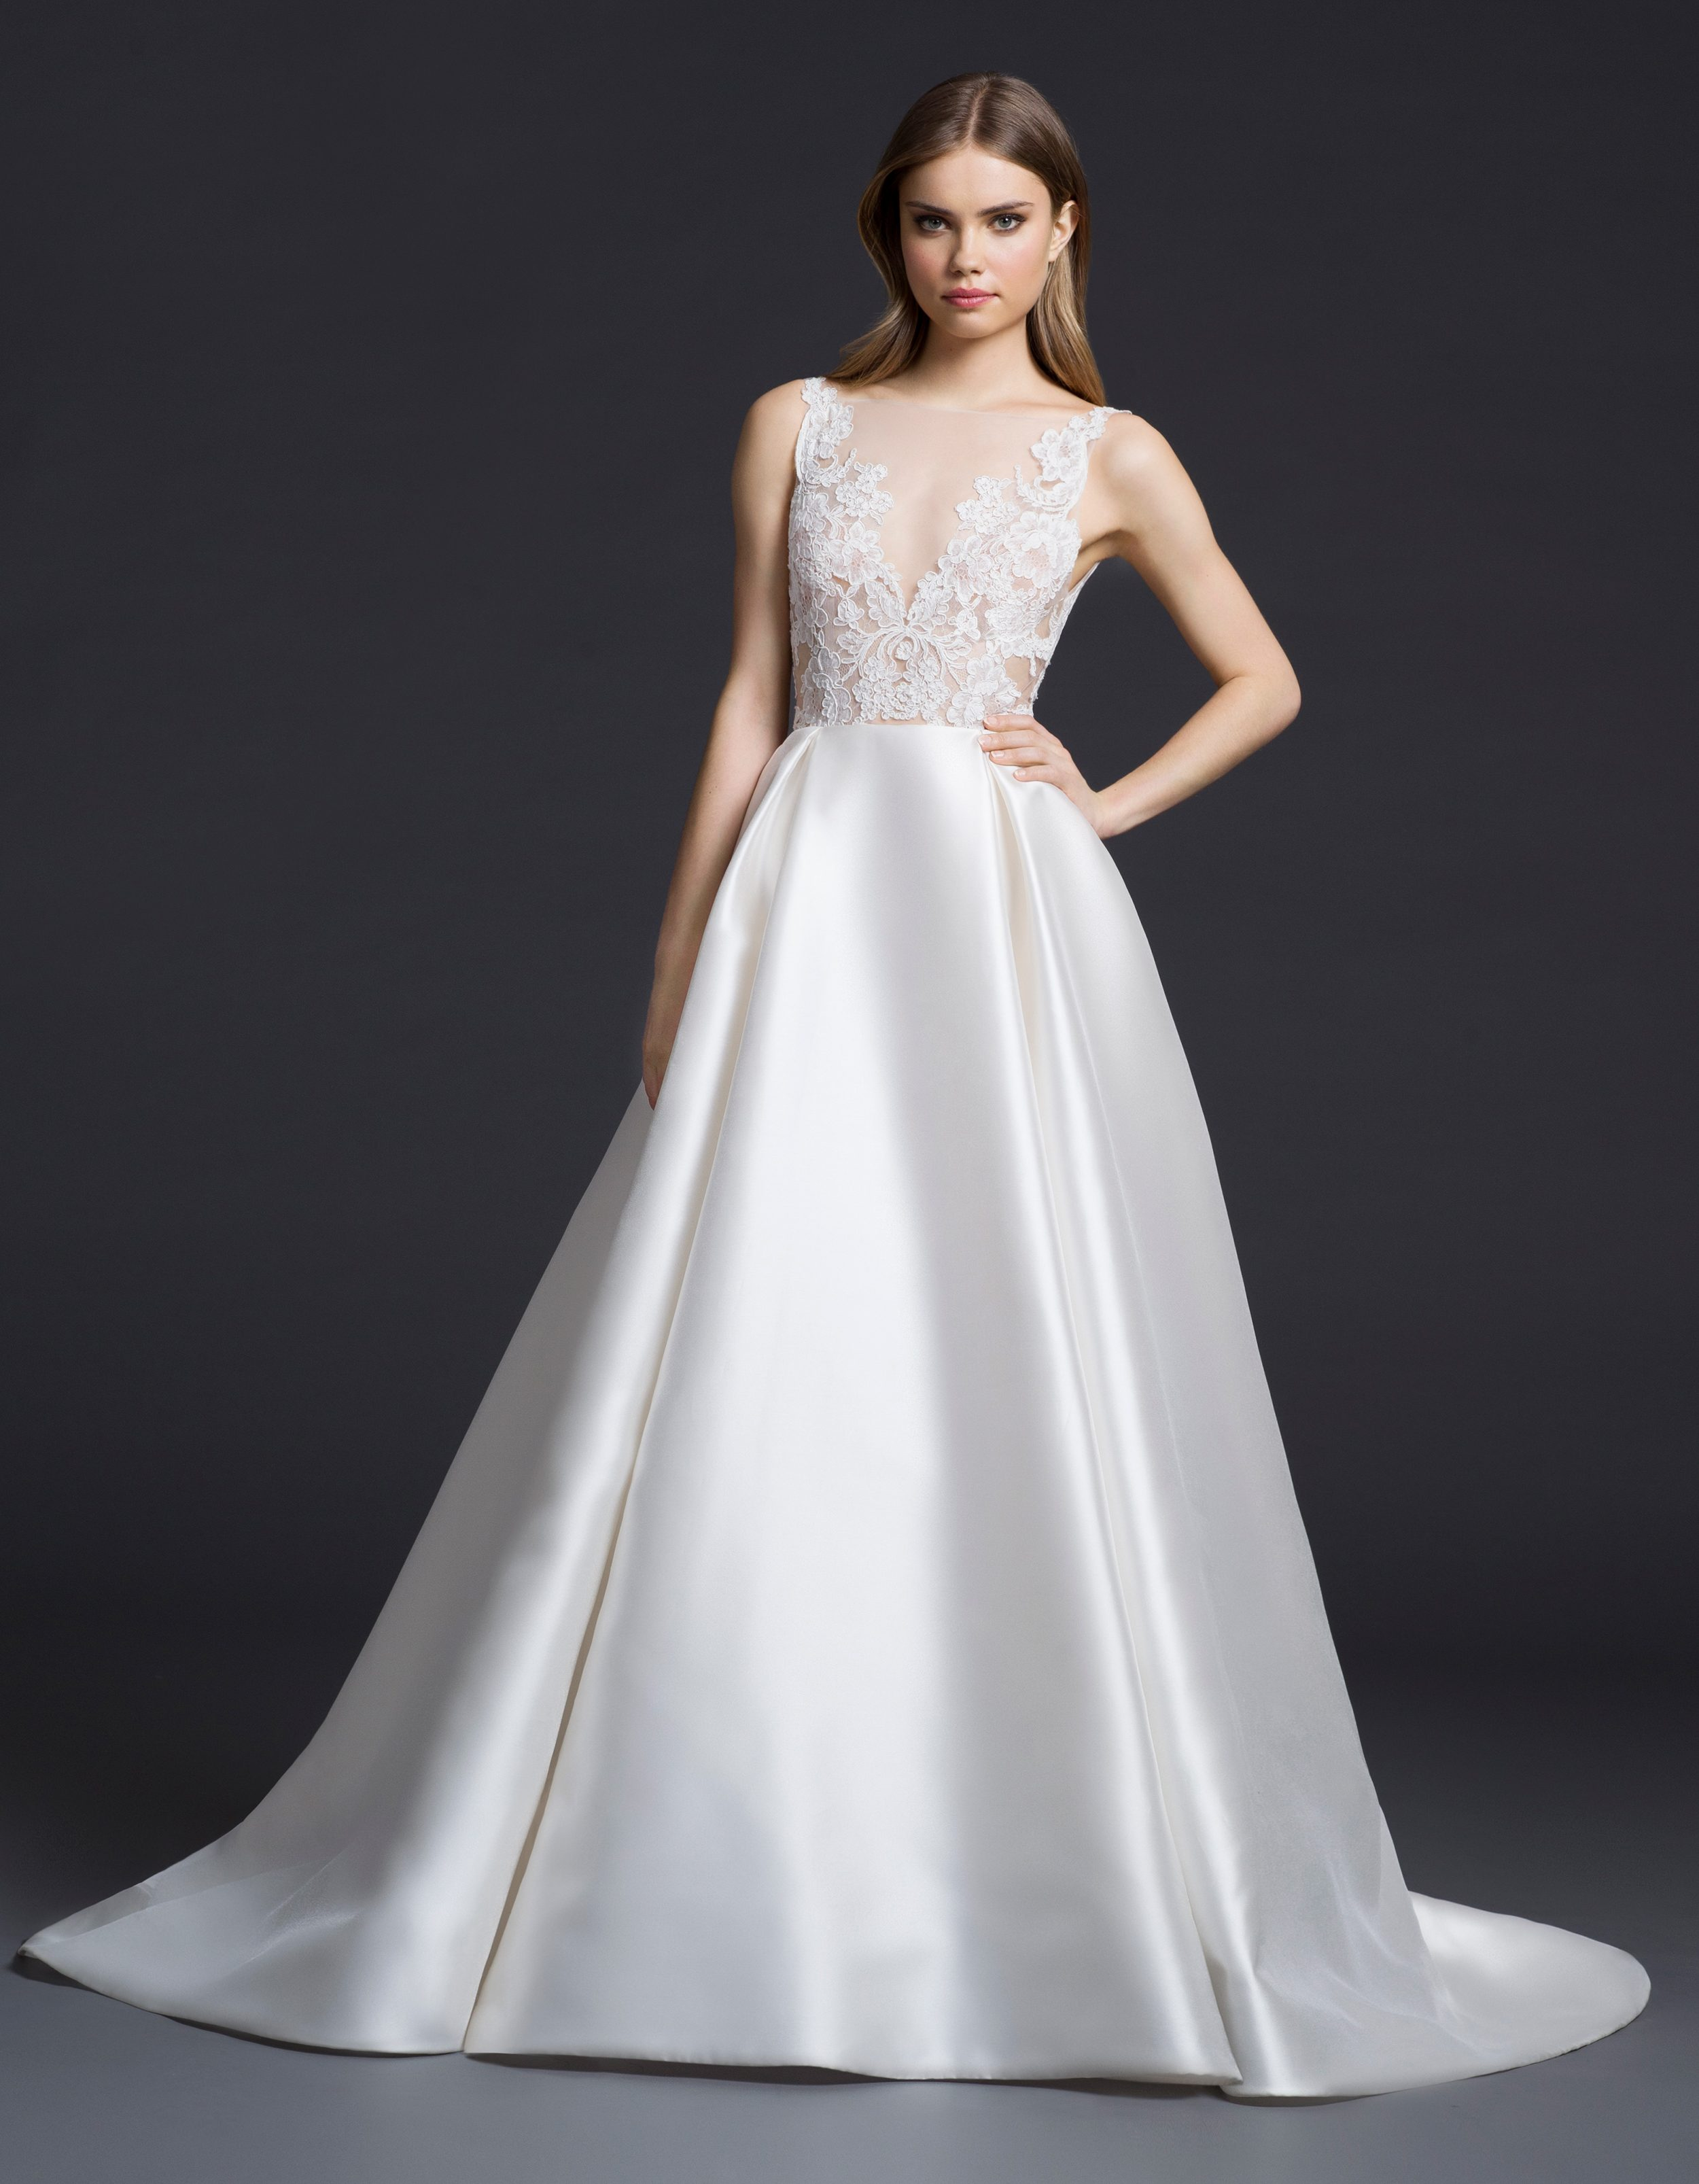 new wedding gowns from lazaro arrive at stardust stardust